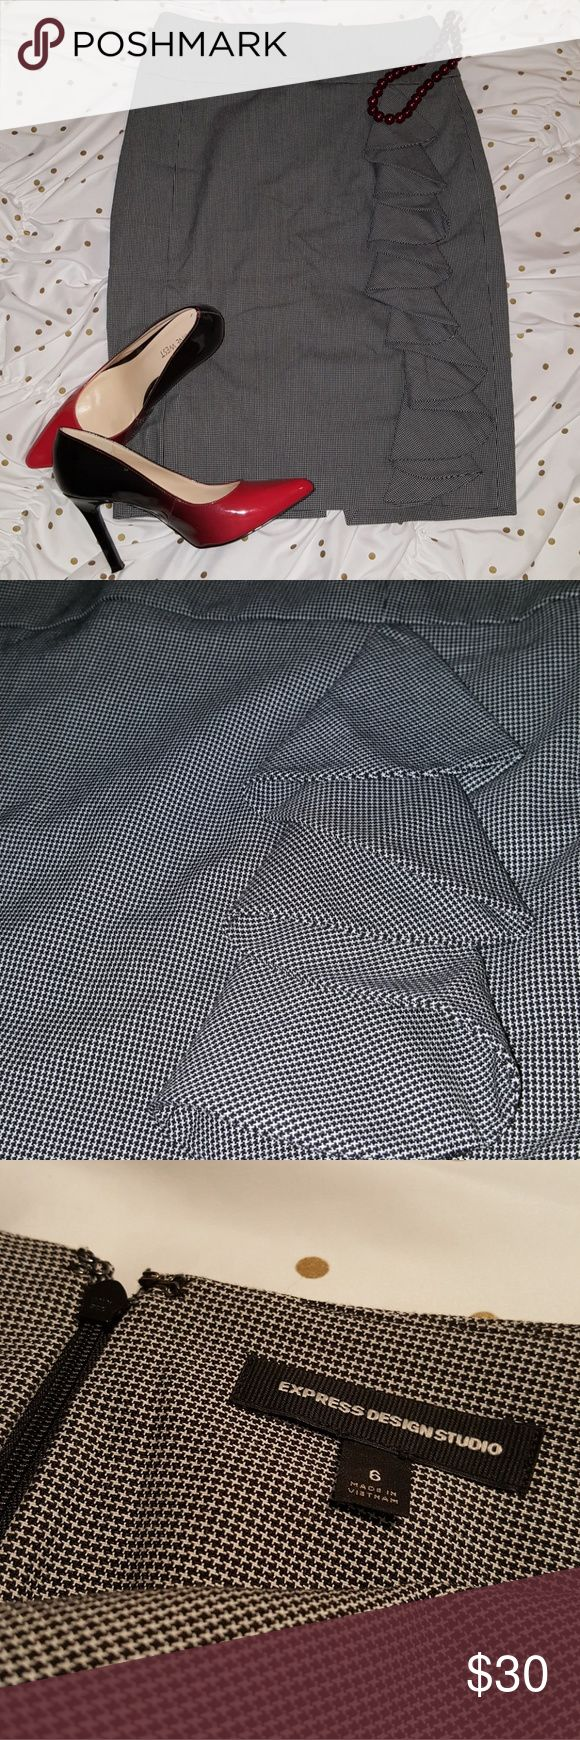 Houndstooth Pencil Skirt A sassy ruffle with classic houndstooth makes this high-waist pencil skirt the perfect mix of trendy and closet staple. Goes with everything and has a form fitting, flattering shape. Fits true to size. Worn once. Express Skirts